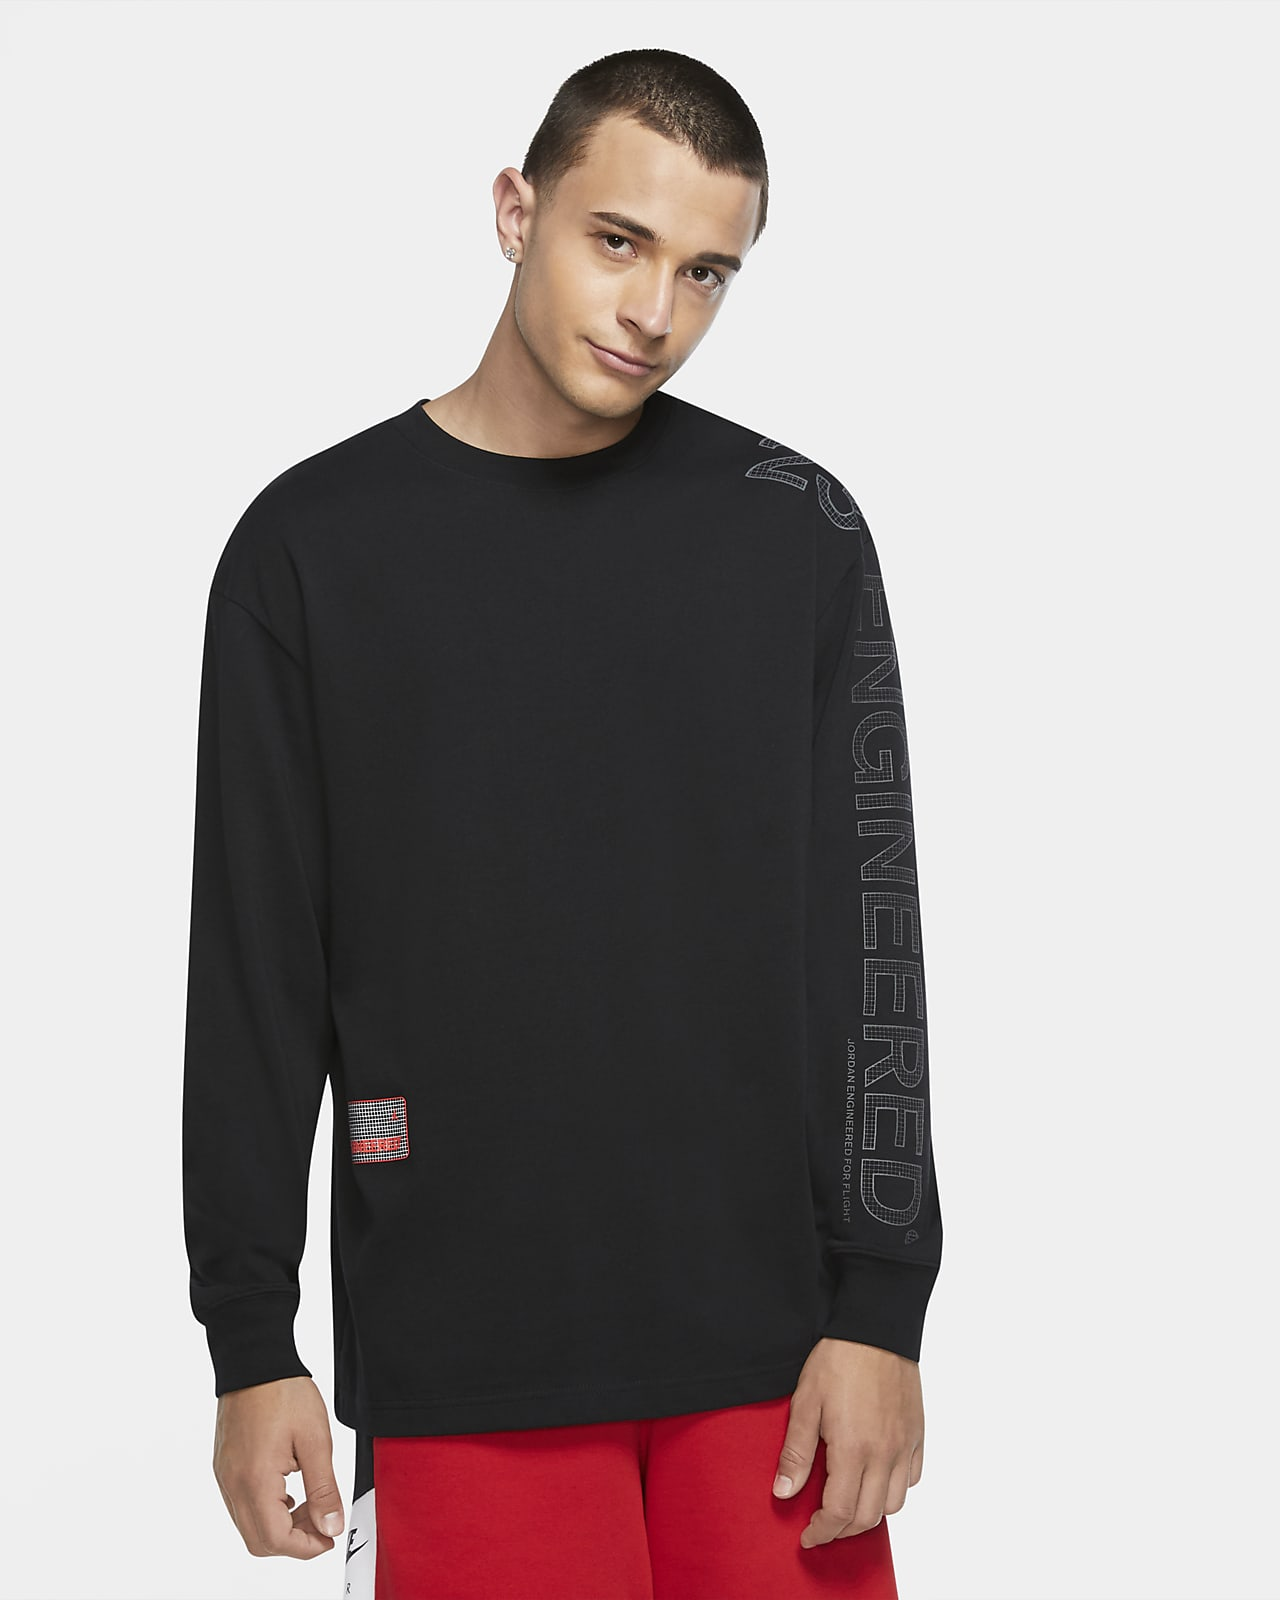 Jordan 23 Engineered Men's Long-Sleeve Crew